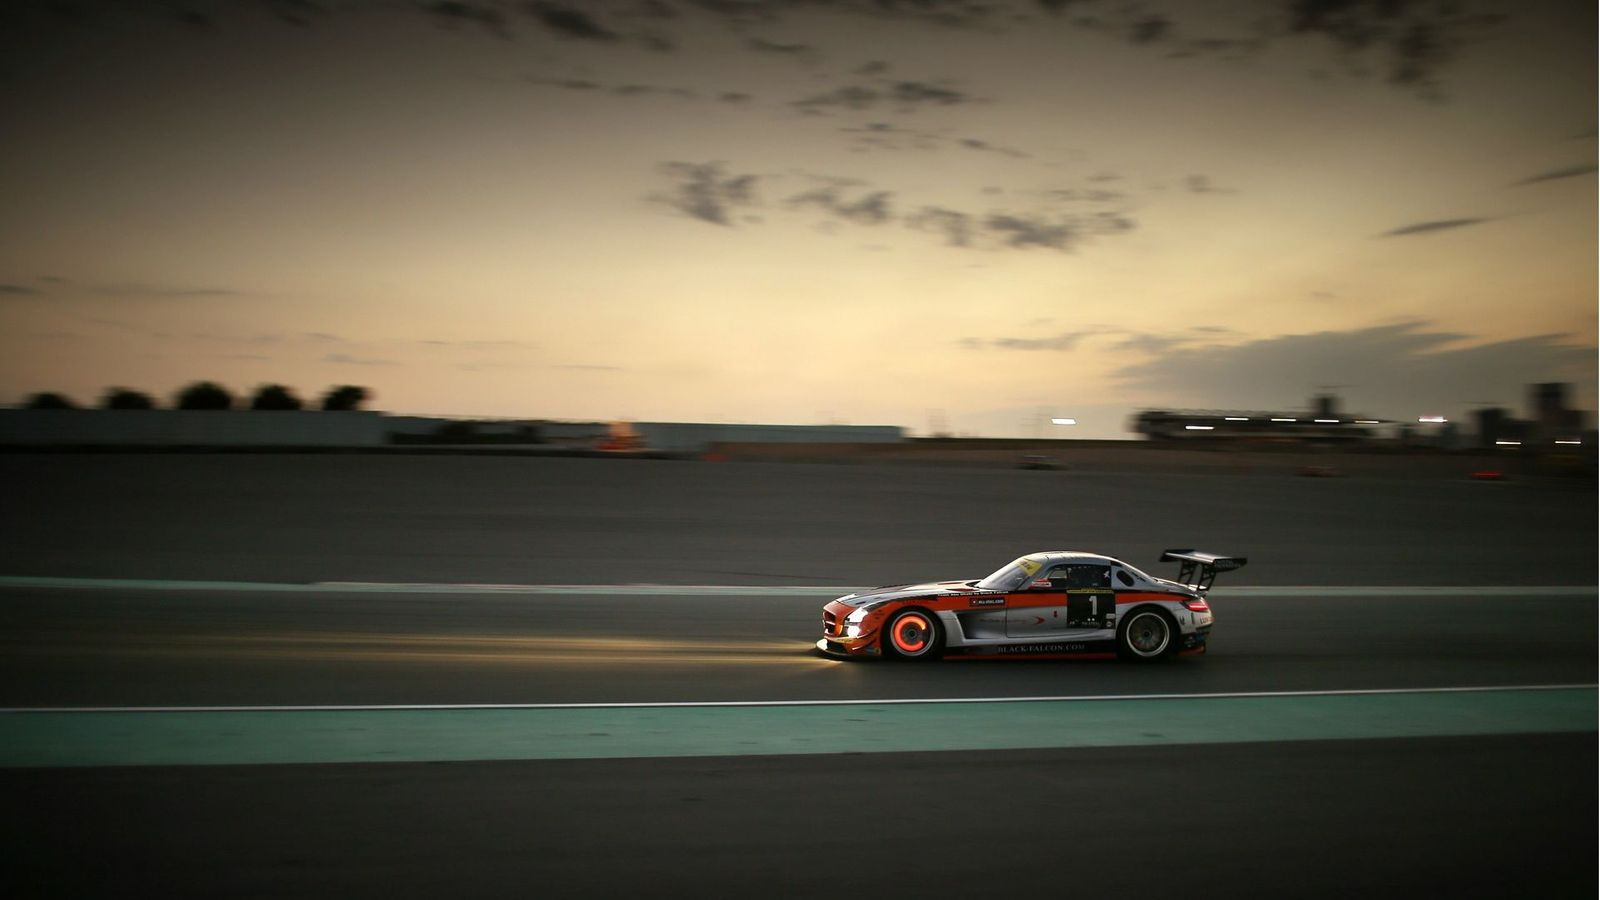 The Benefits of Track Days vs. Time Attack